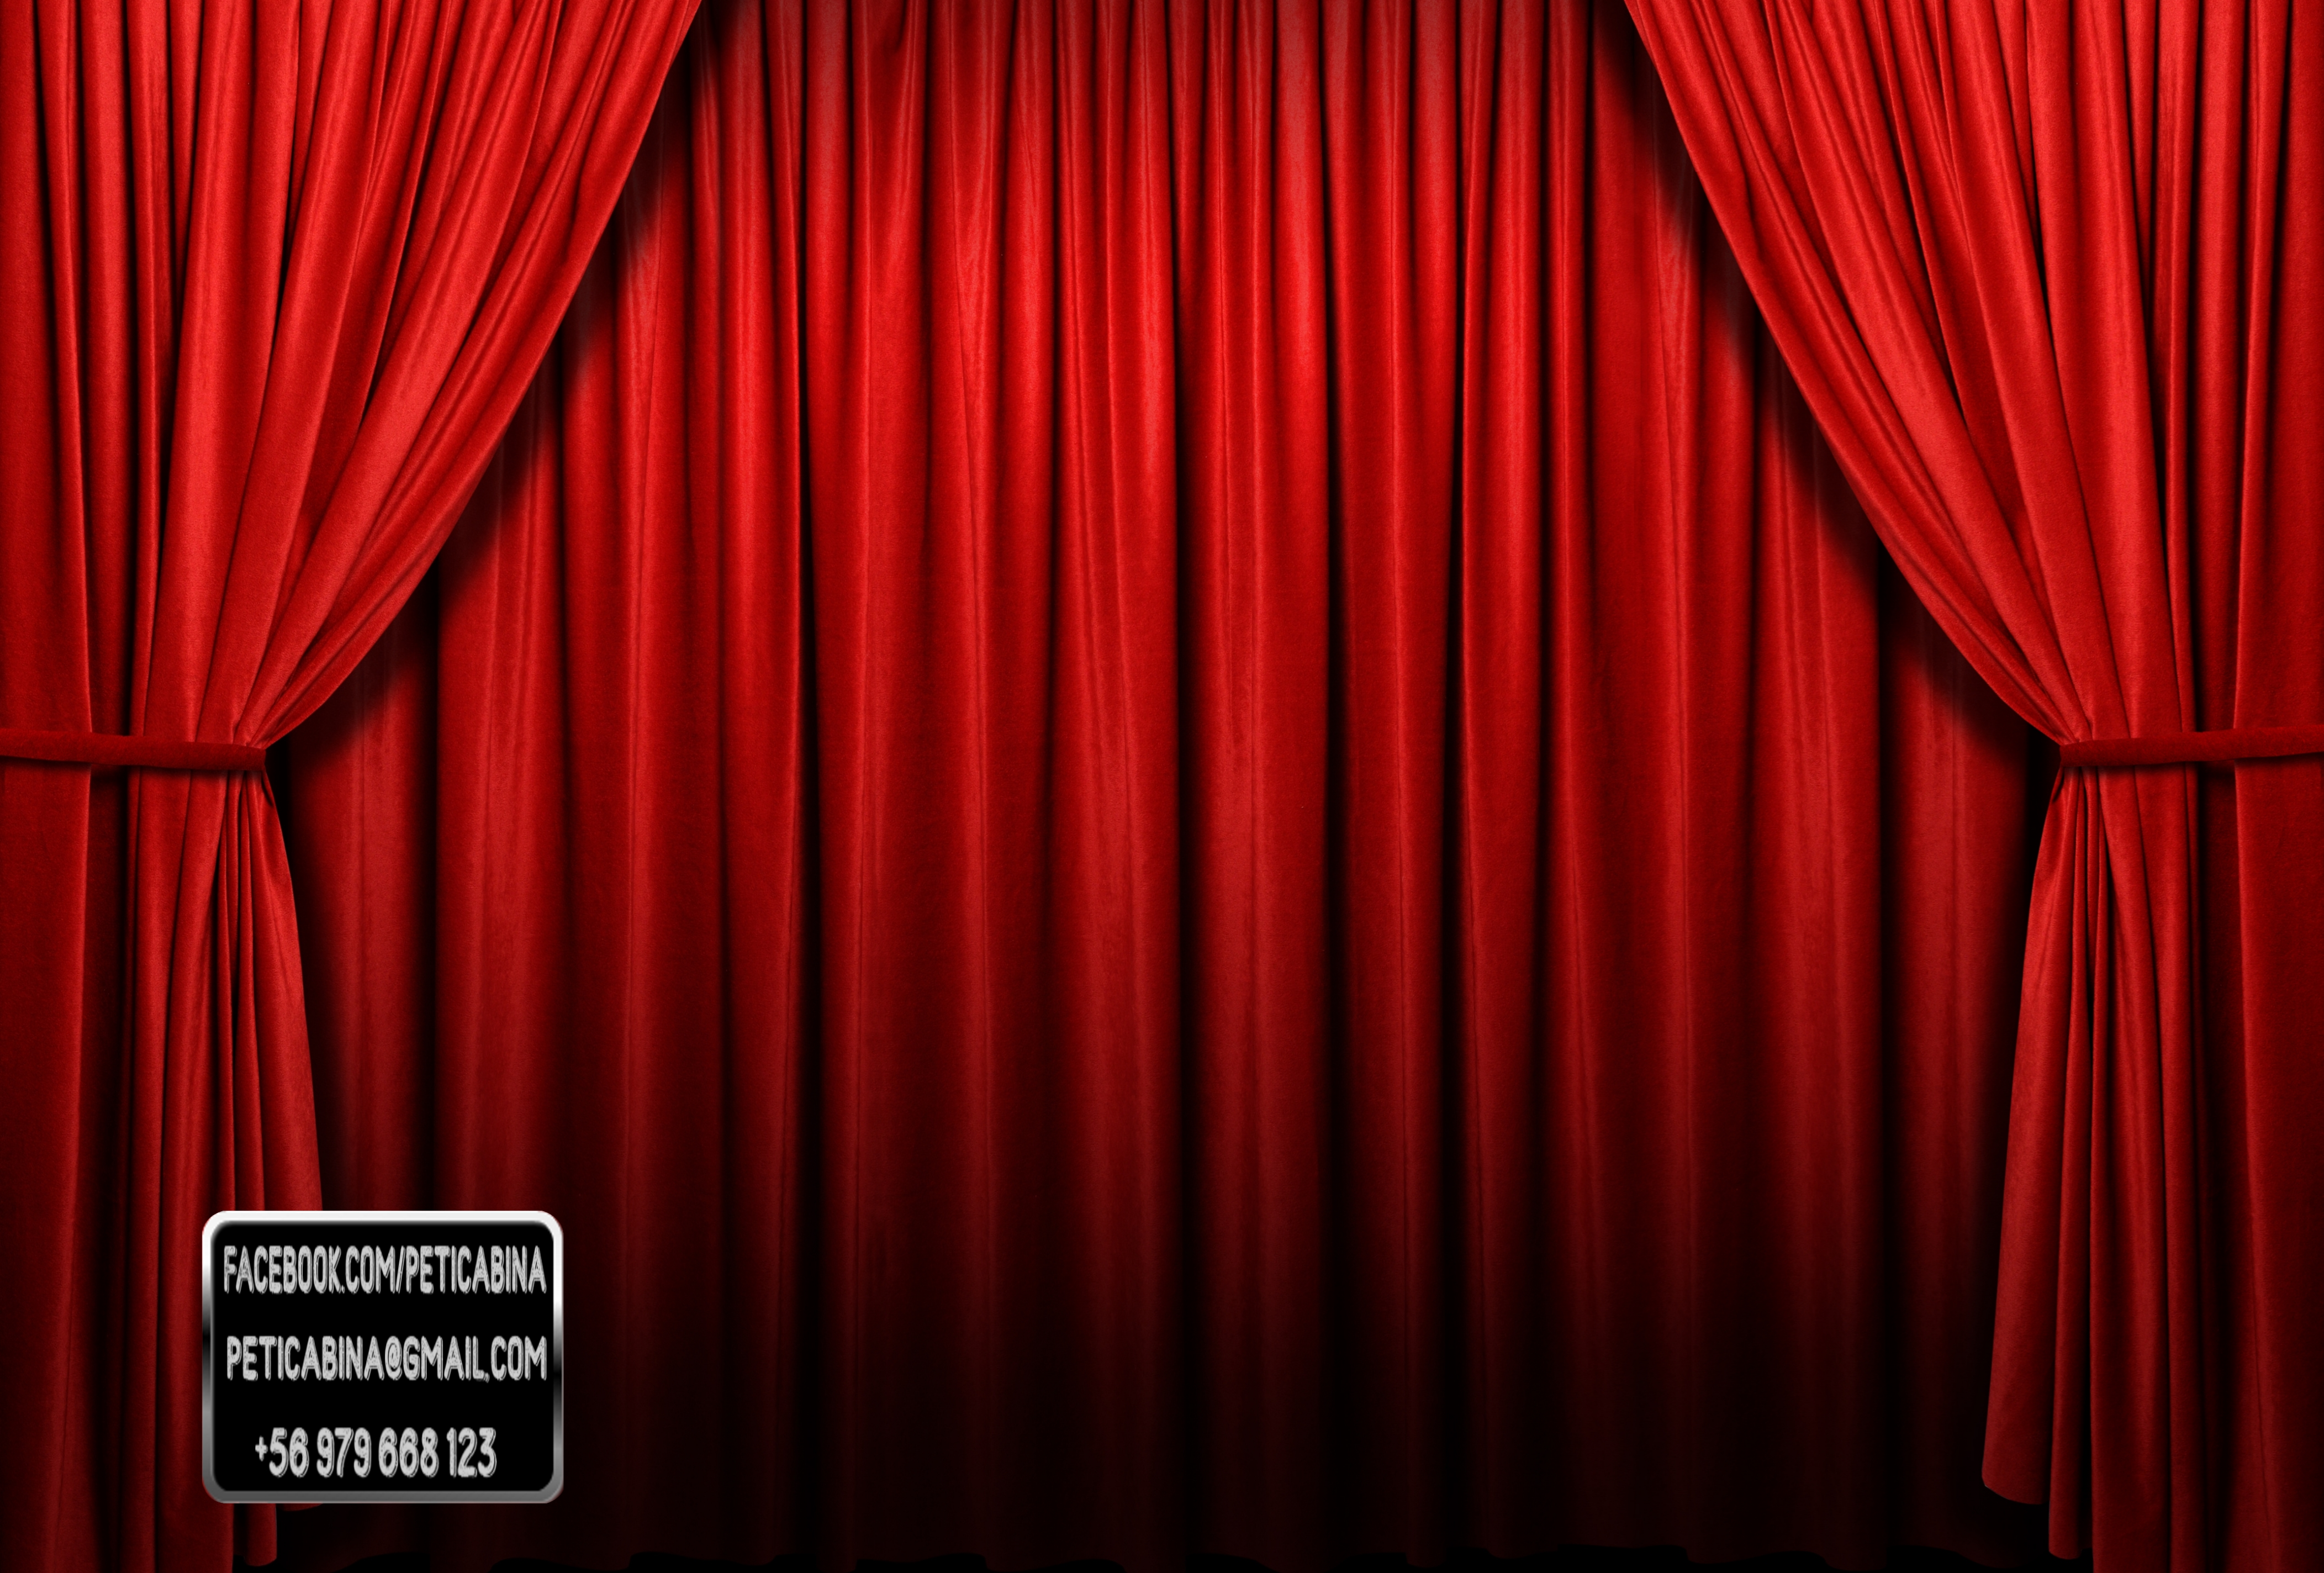 Red stage curtains - Closed Stage Curtain Closed Red Curtain Background Red Curtains Jpg 5 53 Mb